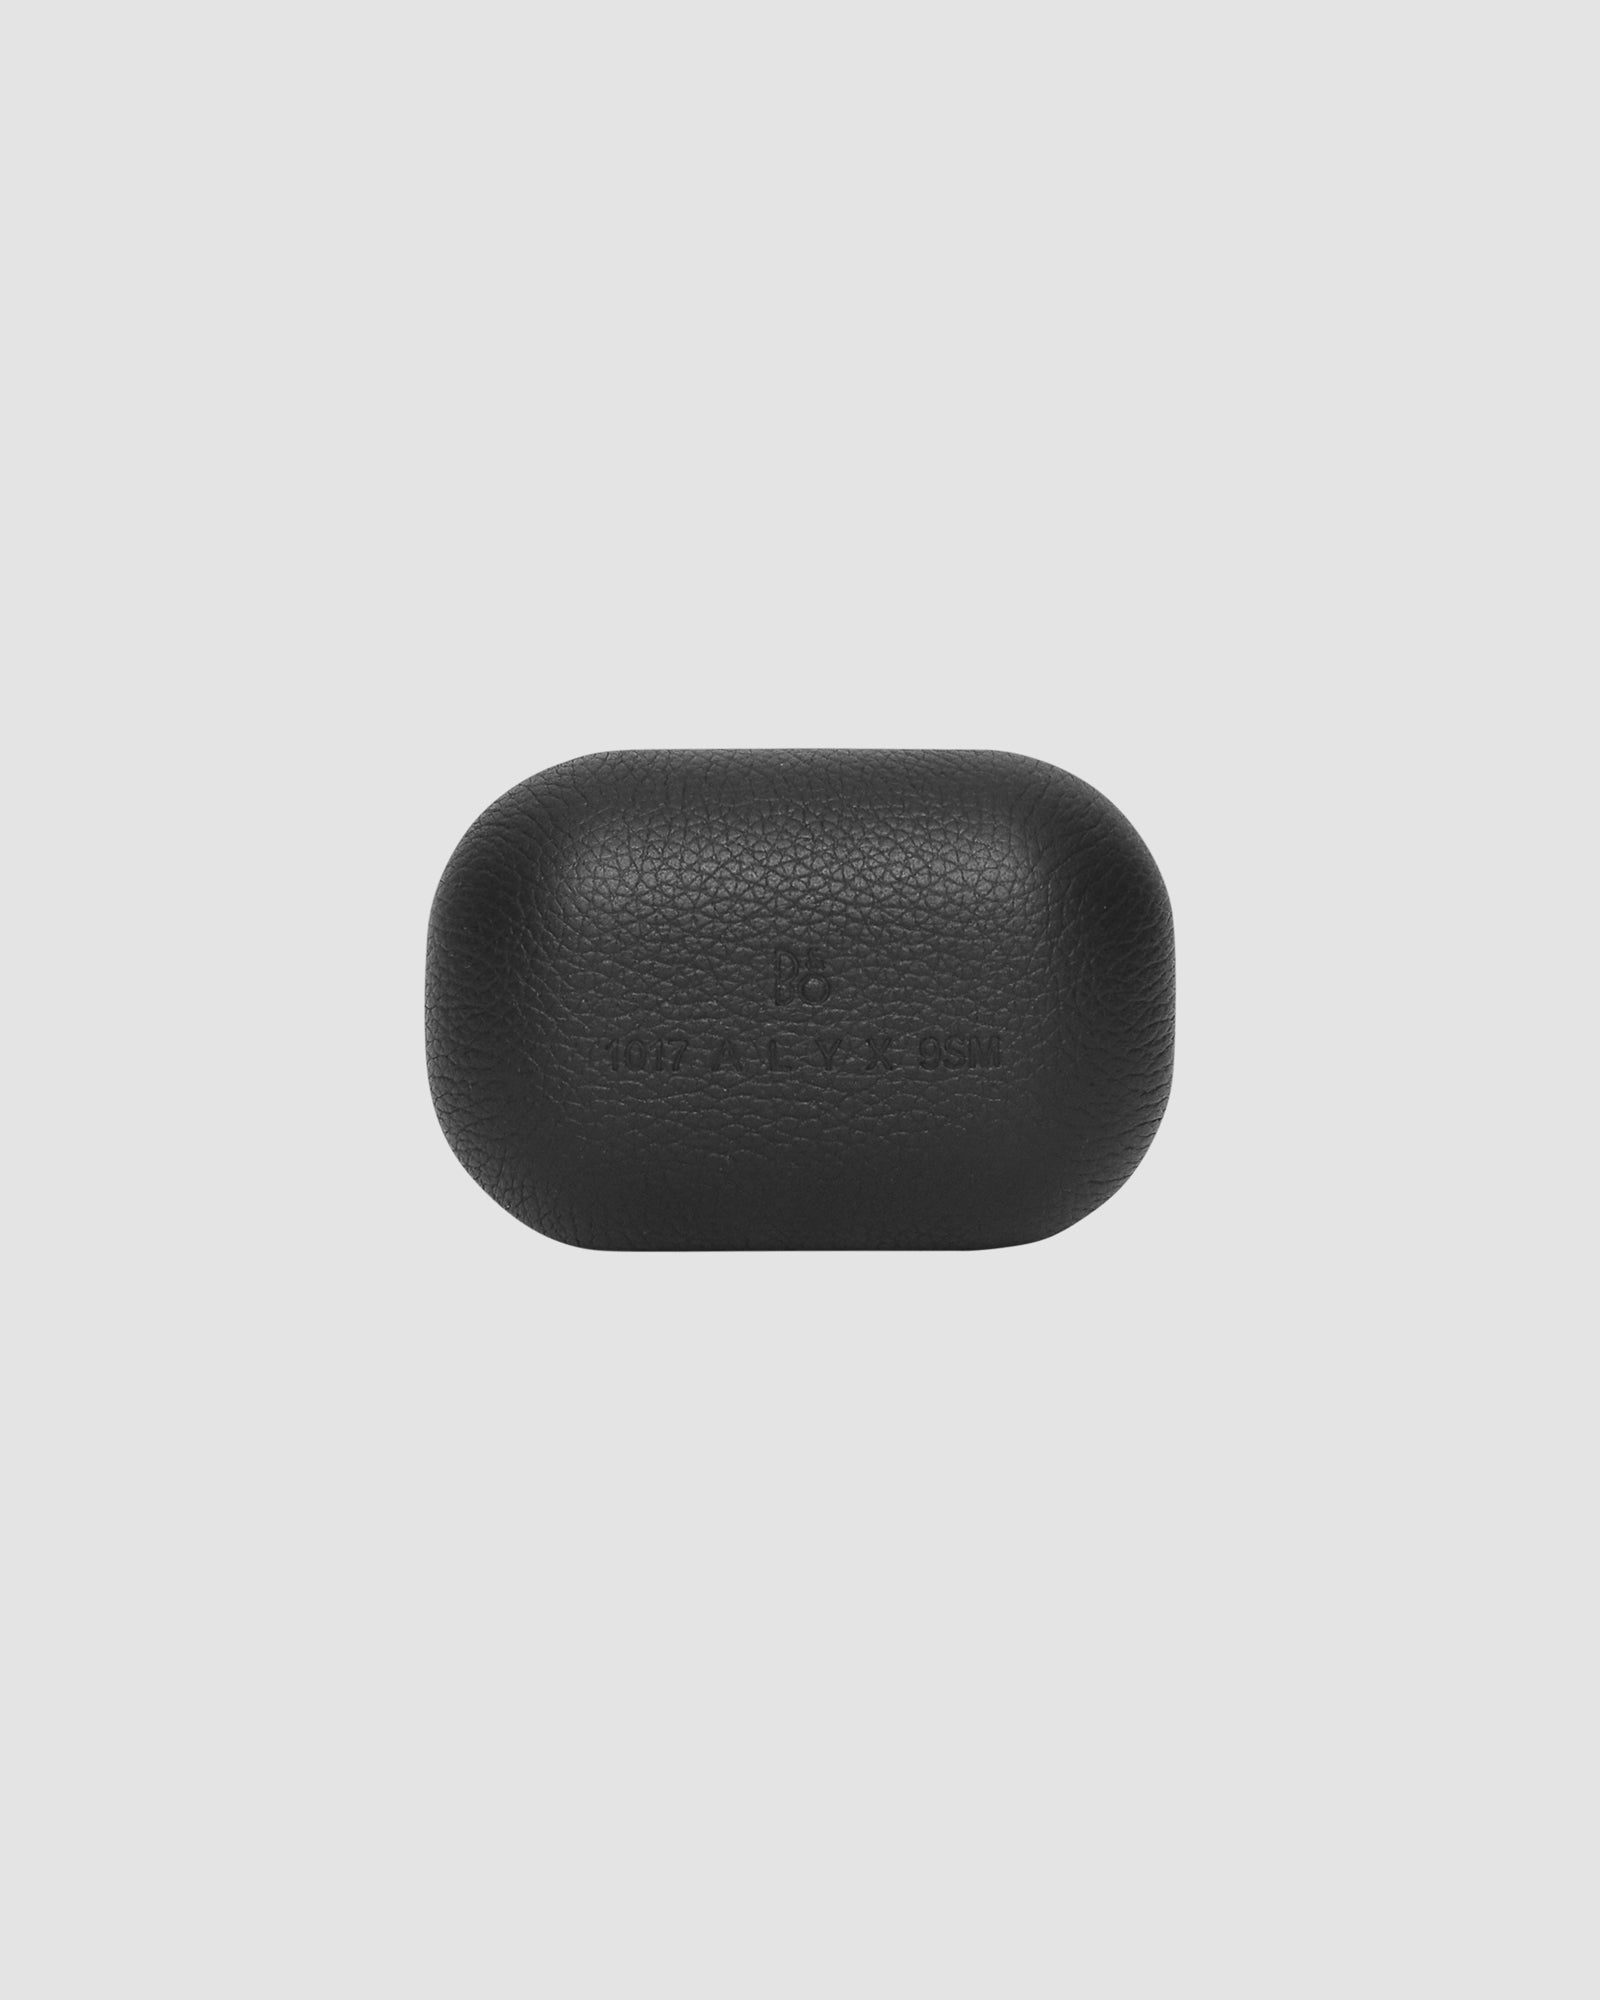 1017 ALYX 9SM | 1017 ALYX 9SM BEOPLAY E8 HEADPHONES | TECH ACCESSORIES | Accessories, B&O, Black, F20, Man, TECH ACCESSORIES, UNISEX, Woman